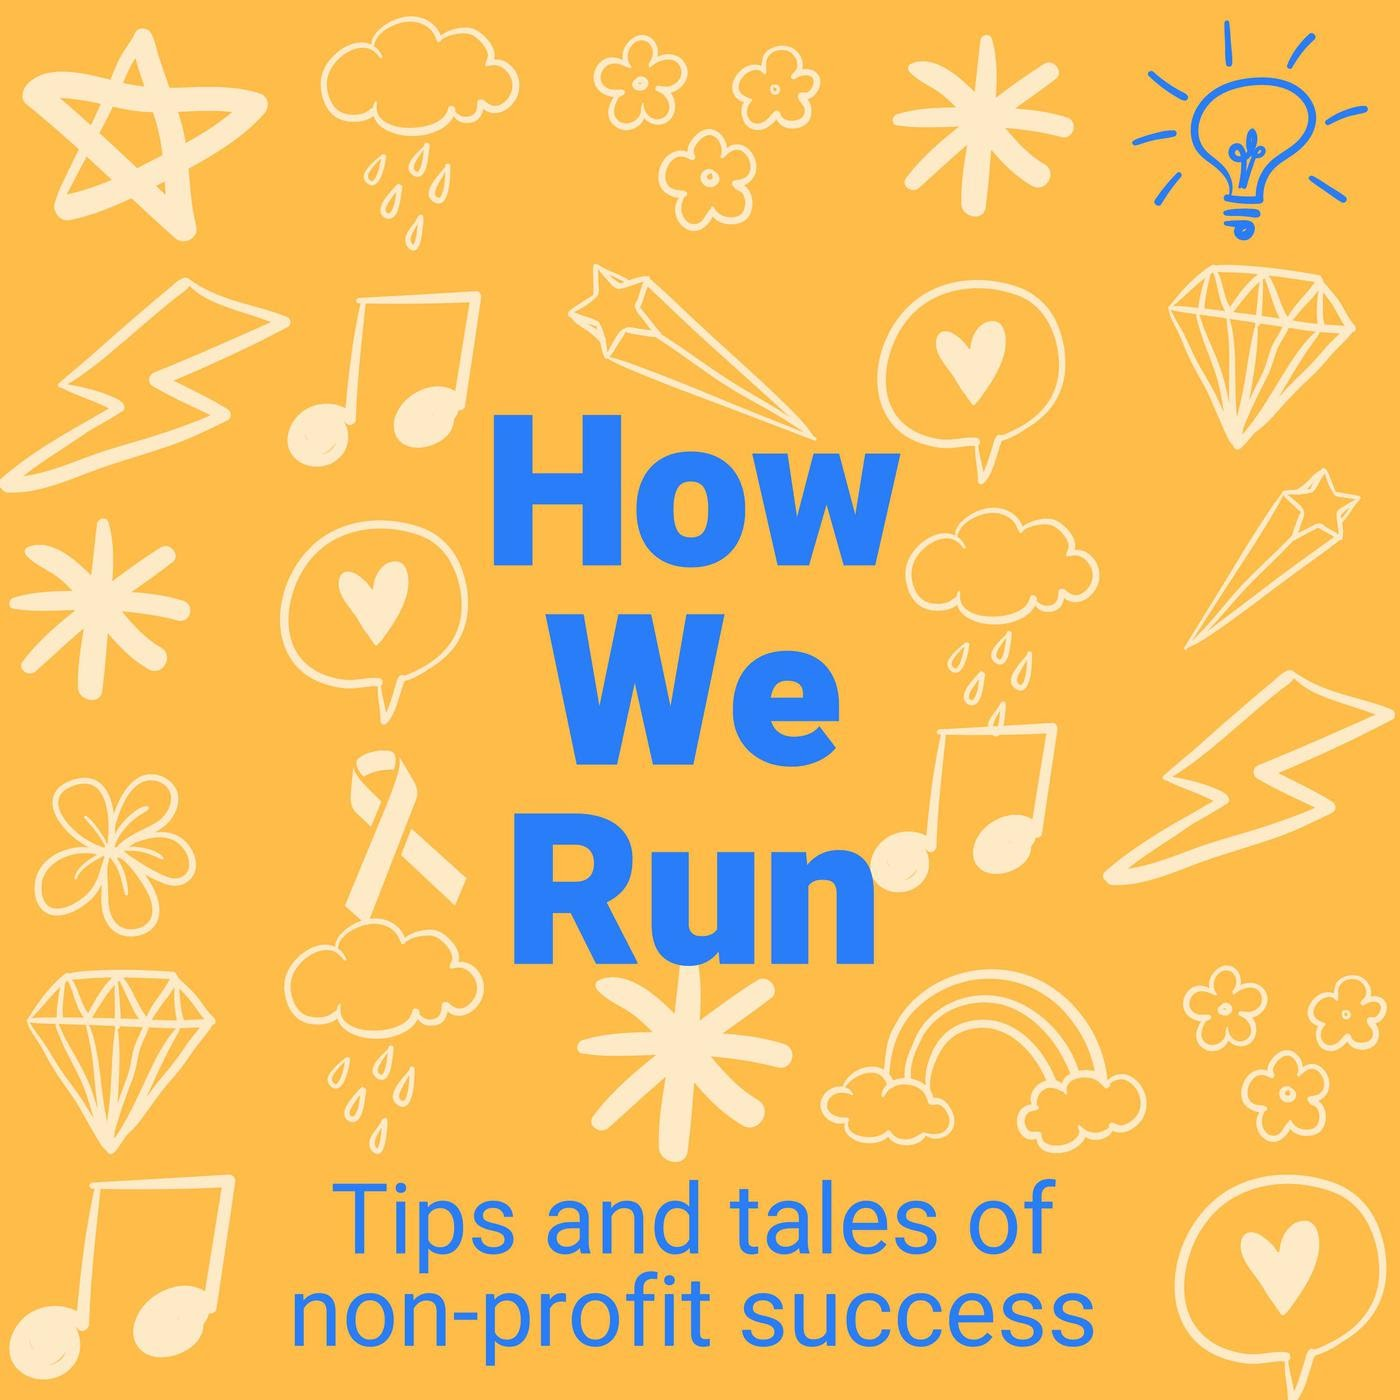 How We Run: tips and tales of nonprofit success by Julie Lacouture and Trent Stamp